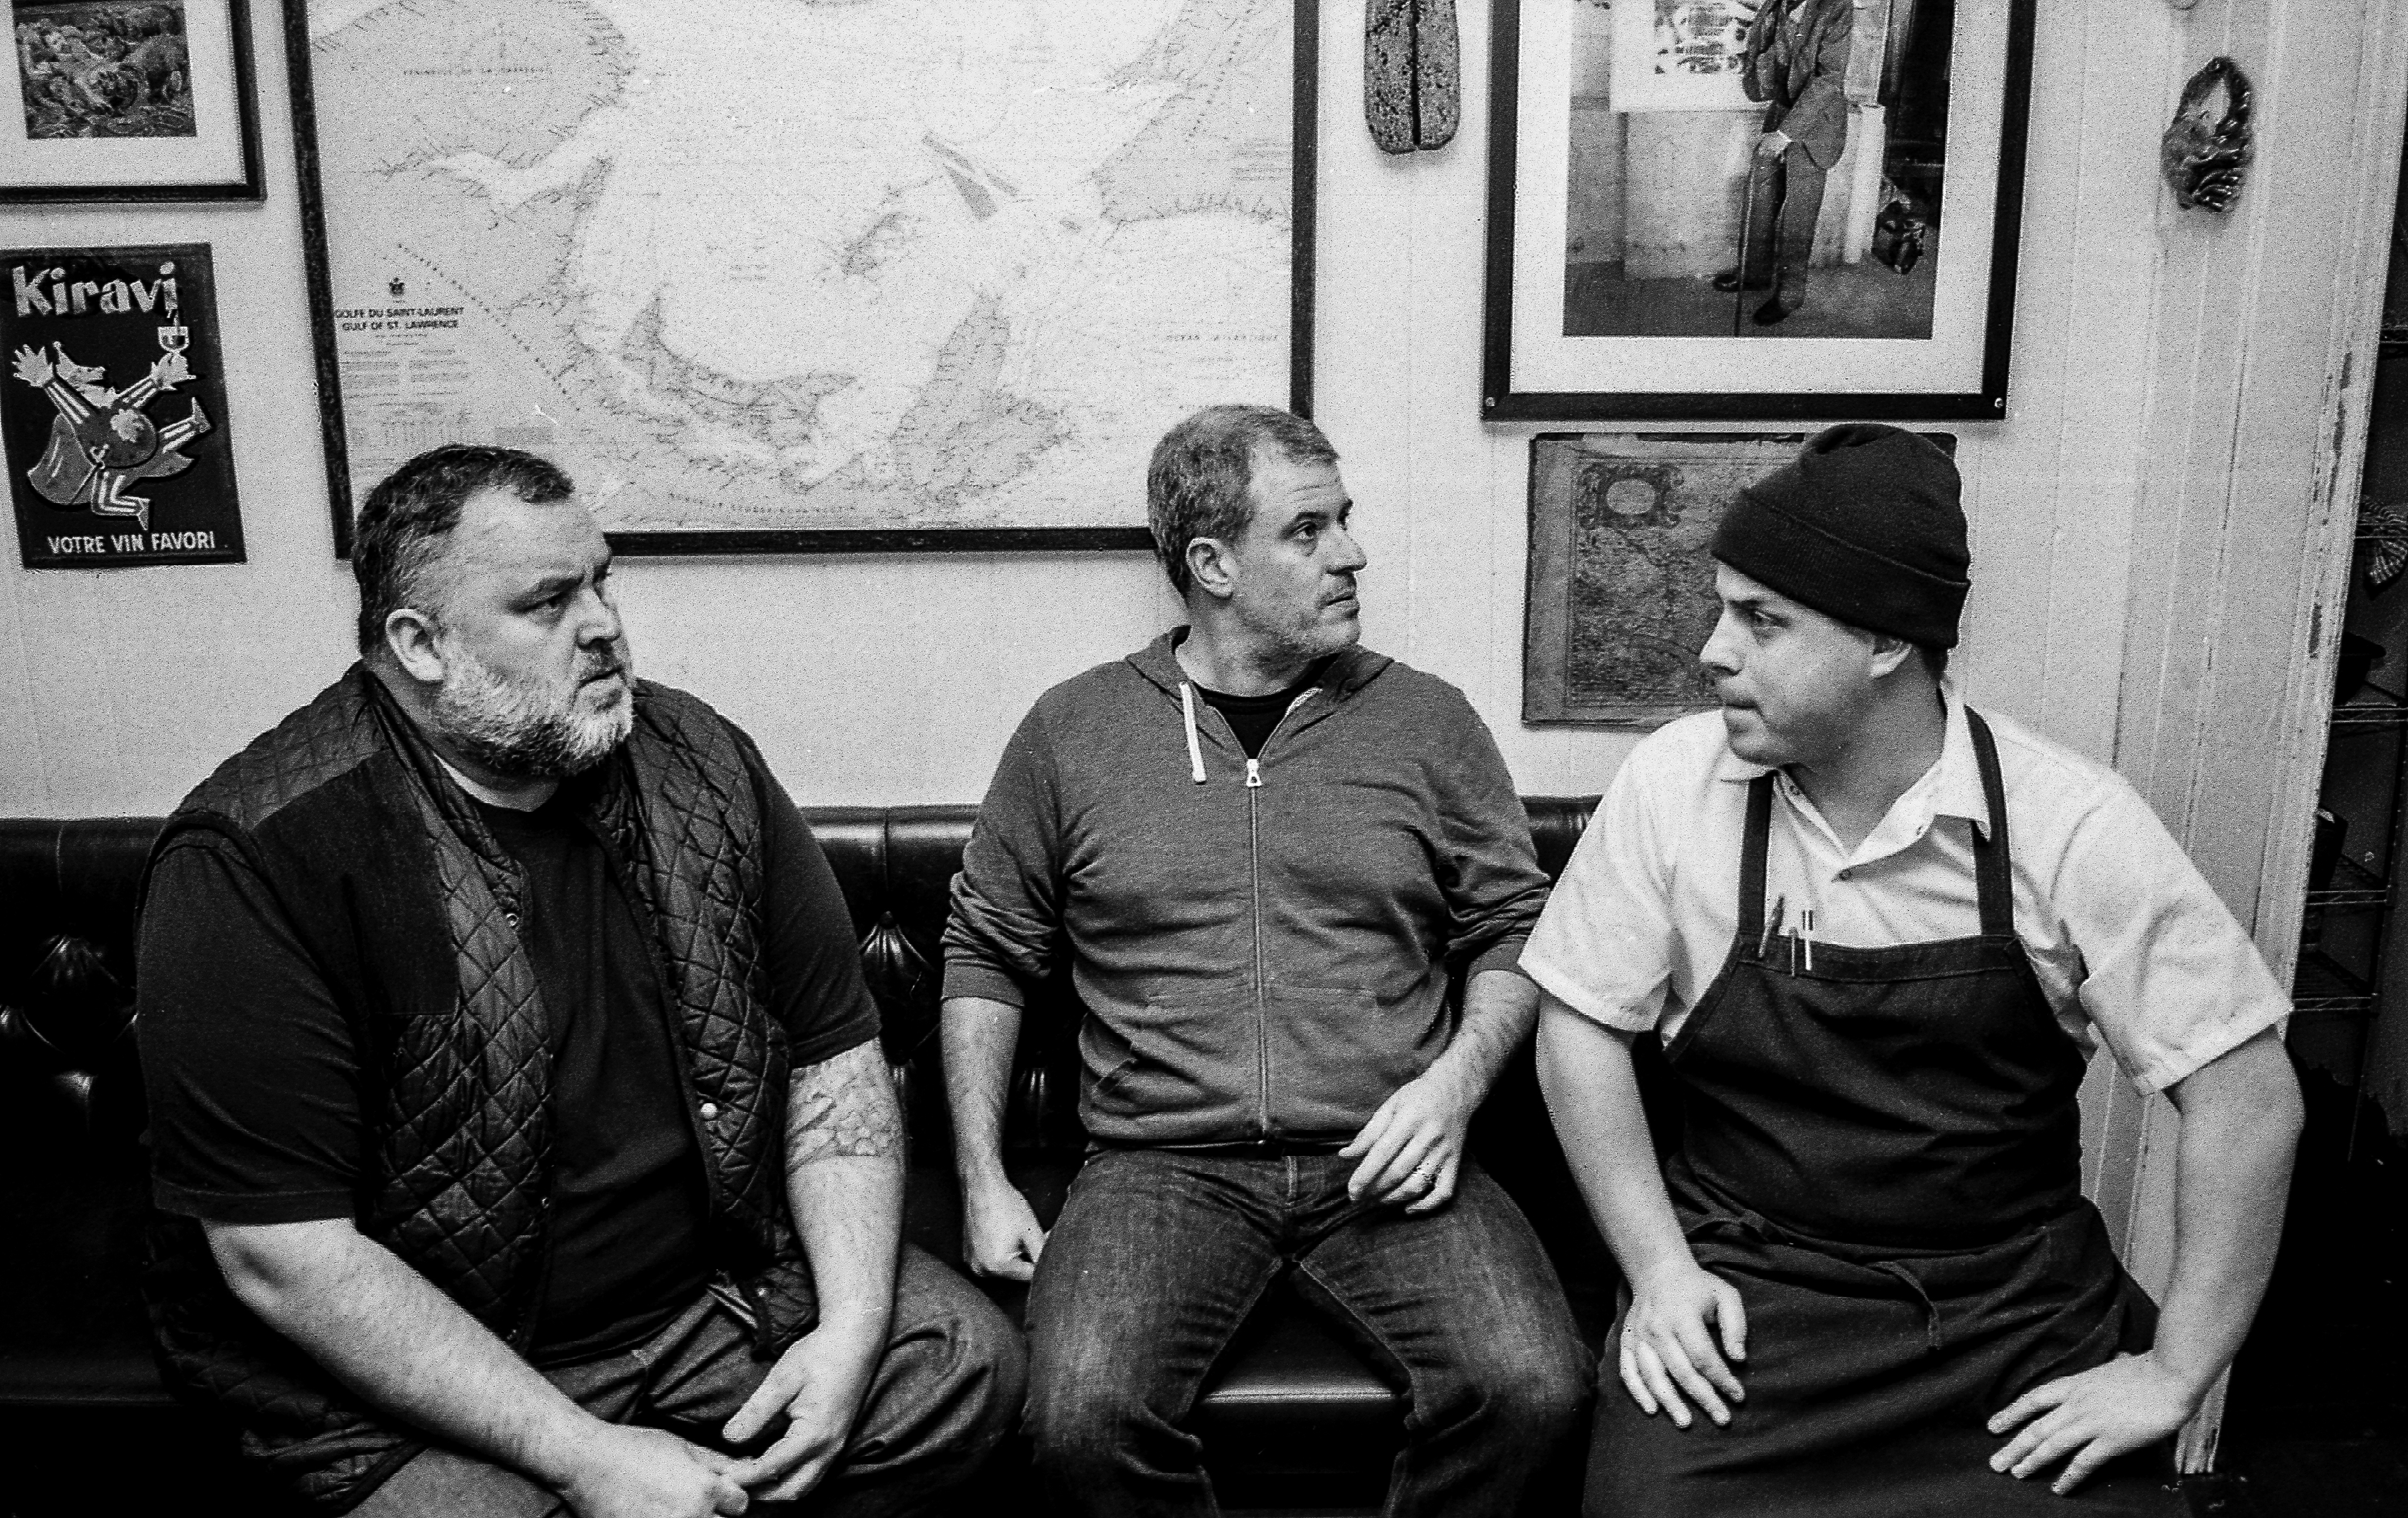 L to R: David McMillan, Fred Morin, and Marc-Olivier Frappier (Photo by Vin Papillon)